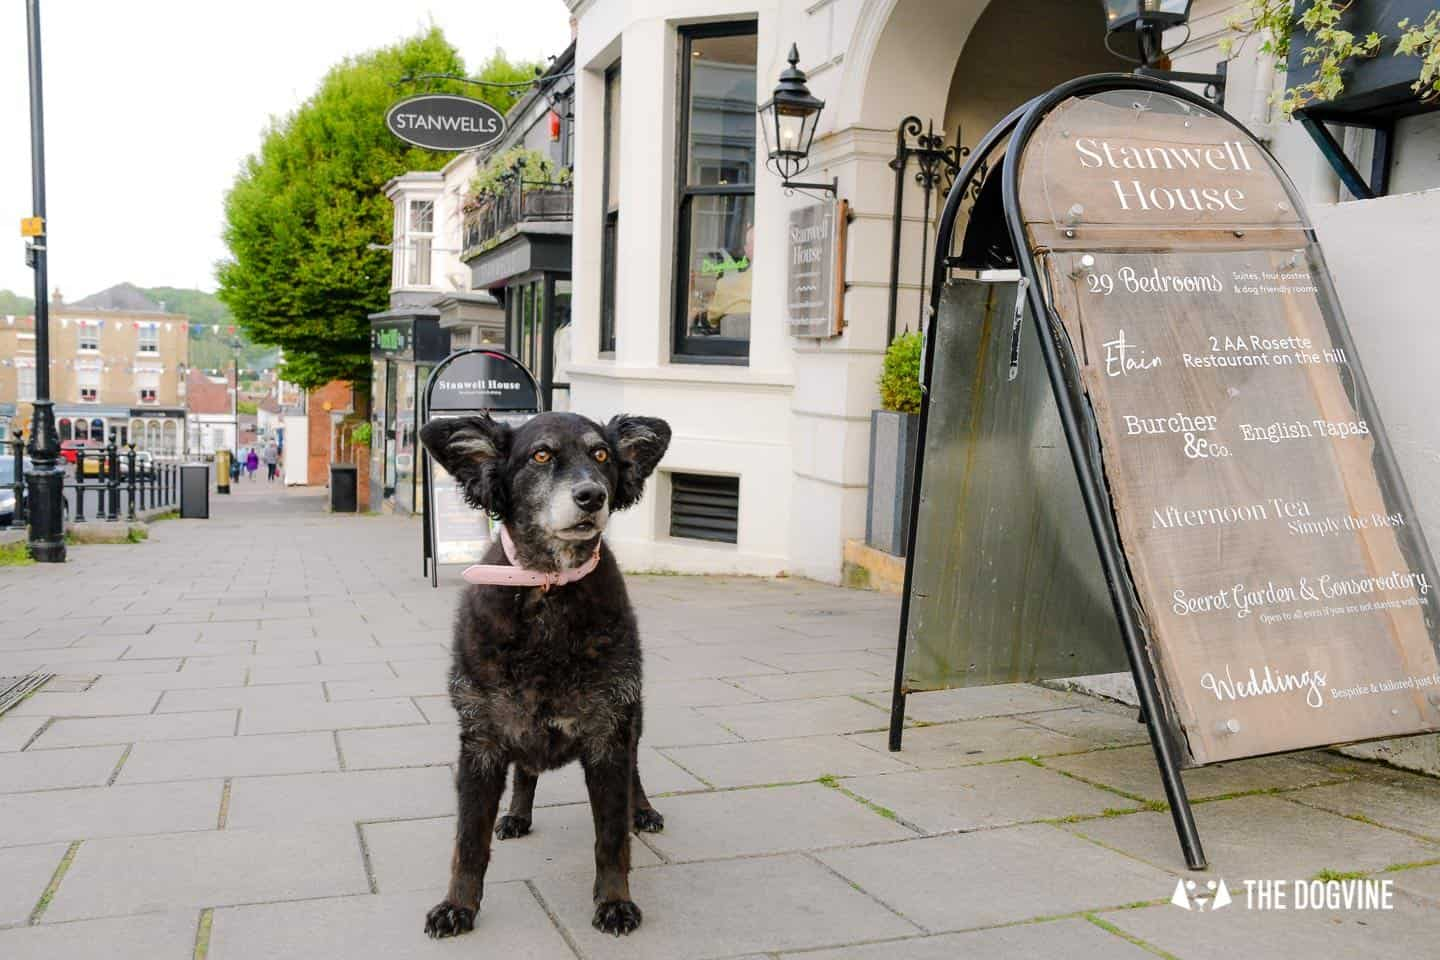 Dog-friendly Stanwell House Hotel Lymington 24